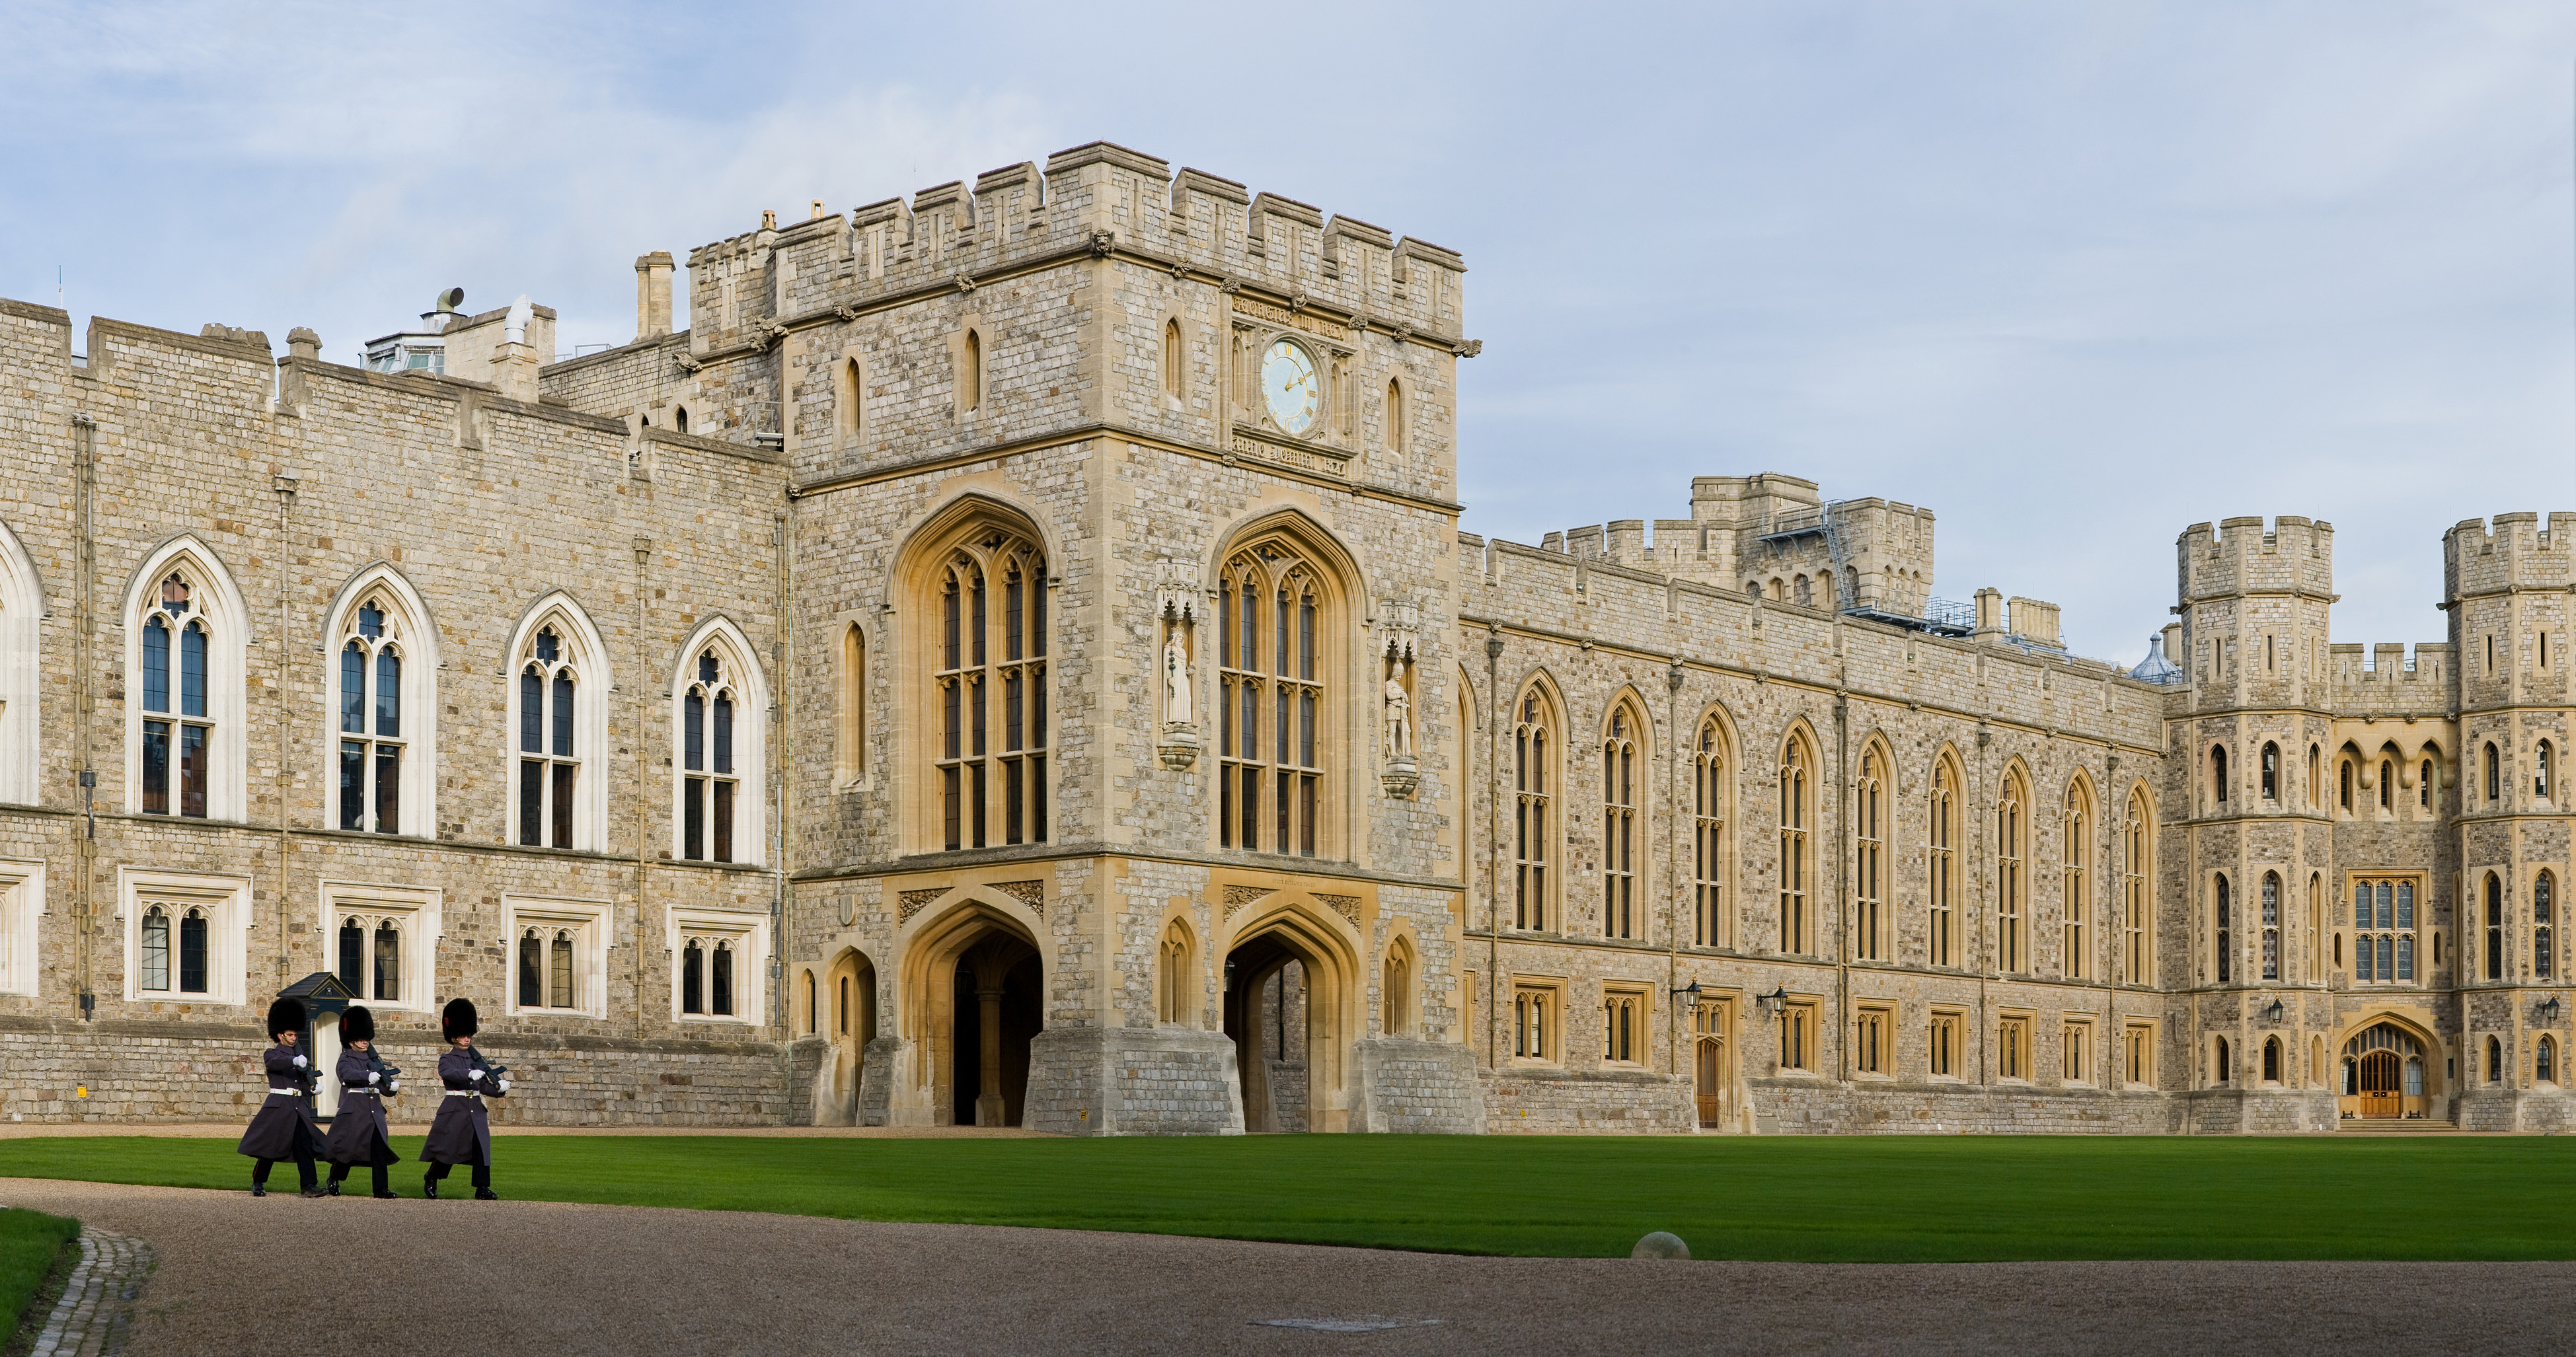 Windsor Castle - Wikipedia